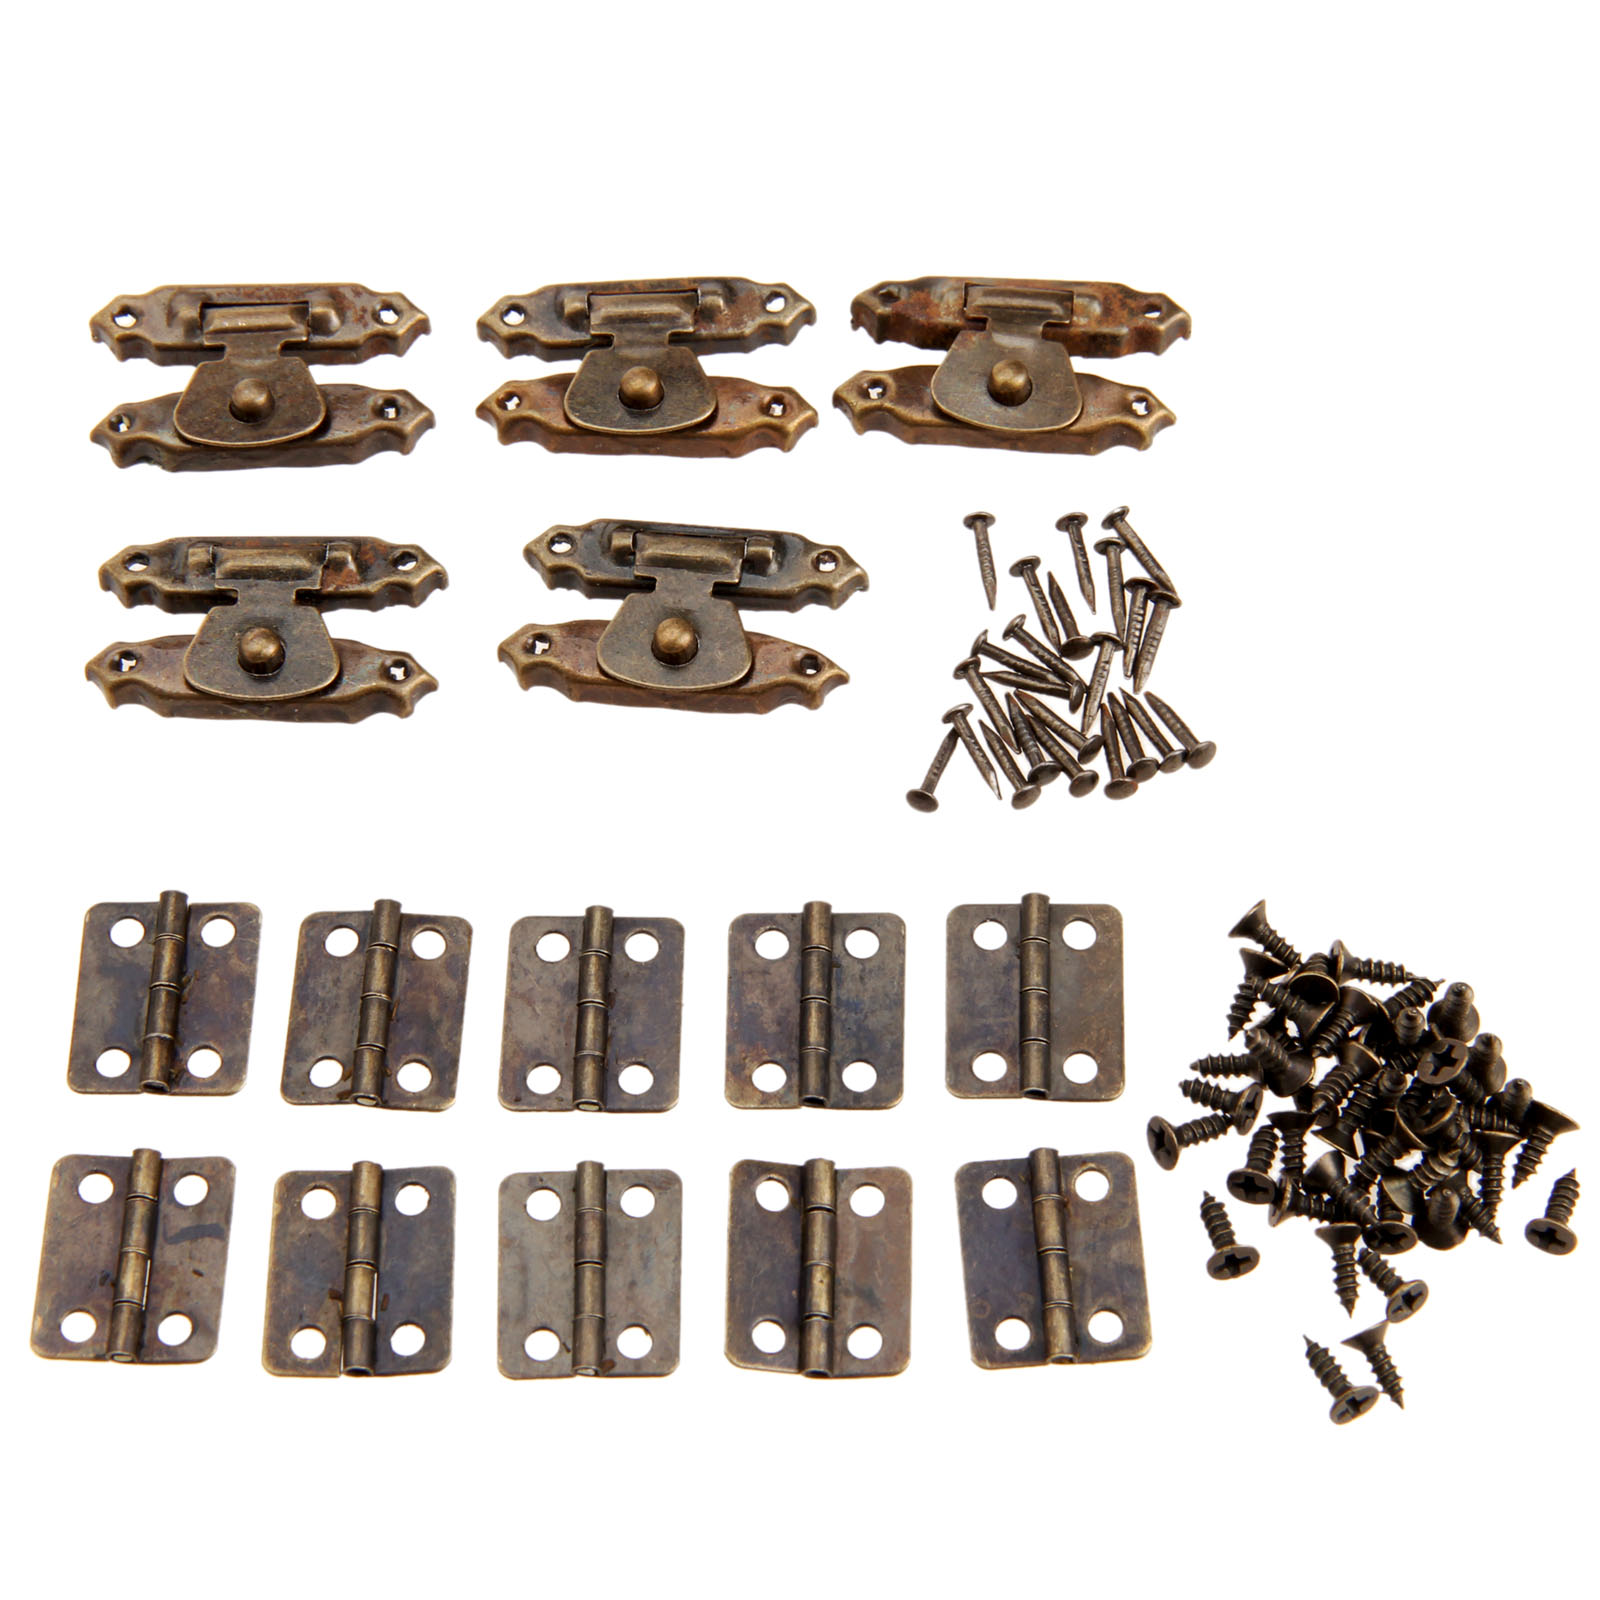 Hasps Hinges Hardware Latch Jewelry-Box Toggle-Lock Decorative Furniture Iron Bronze